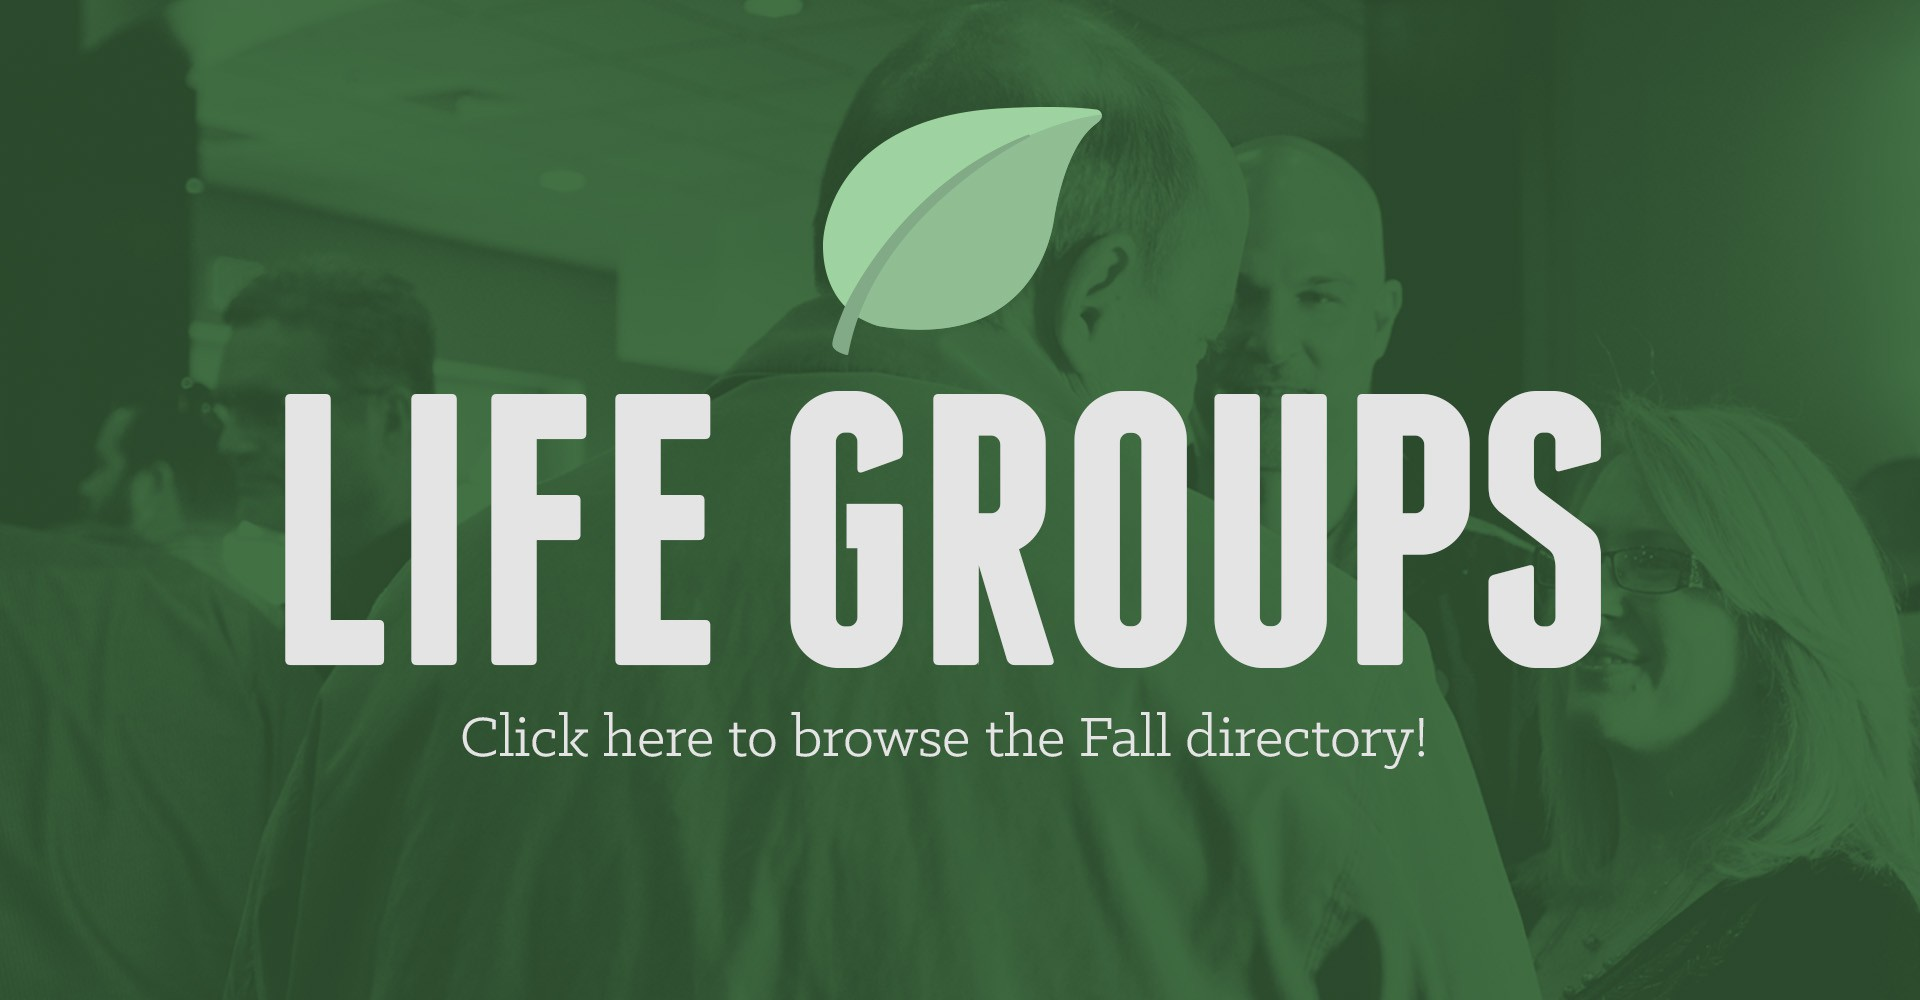 lifegroups-website1